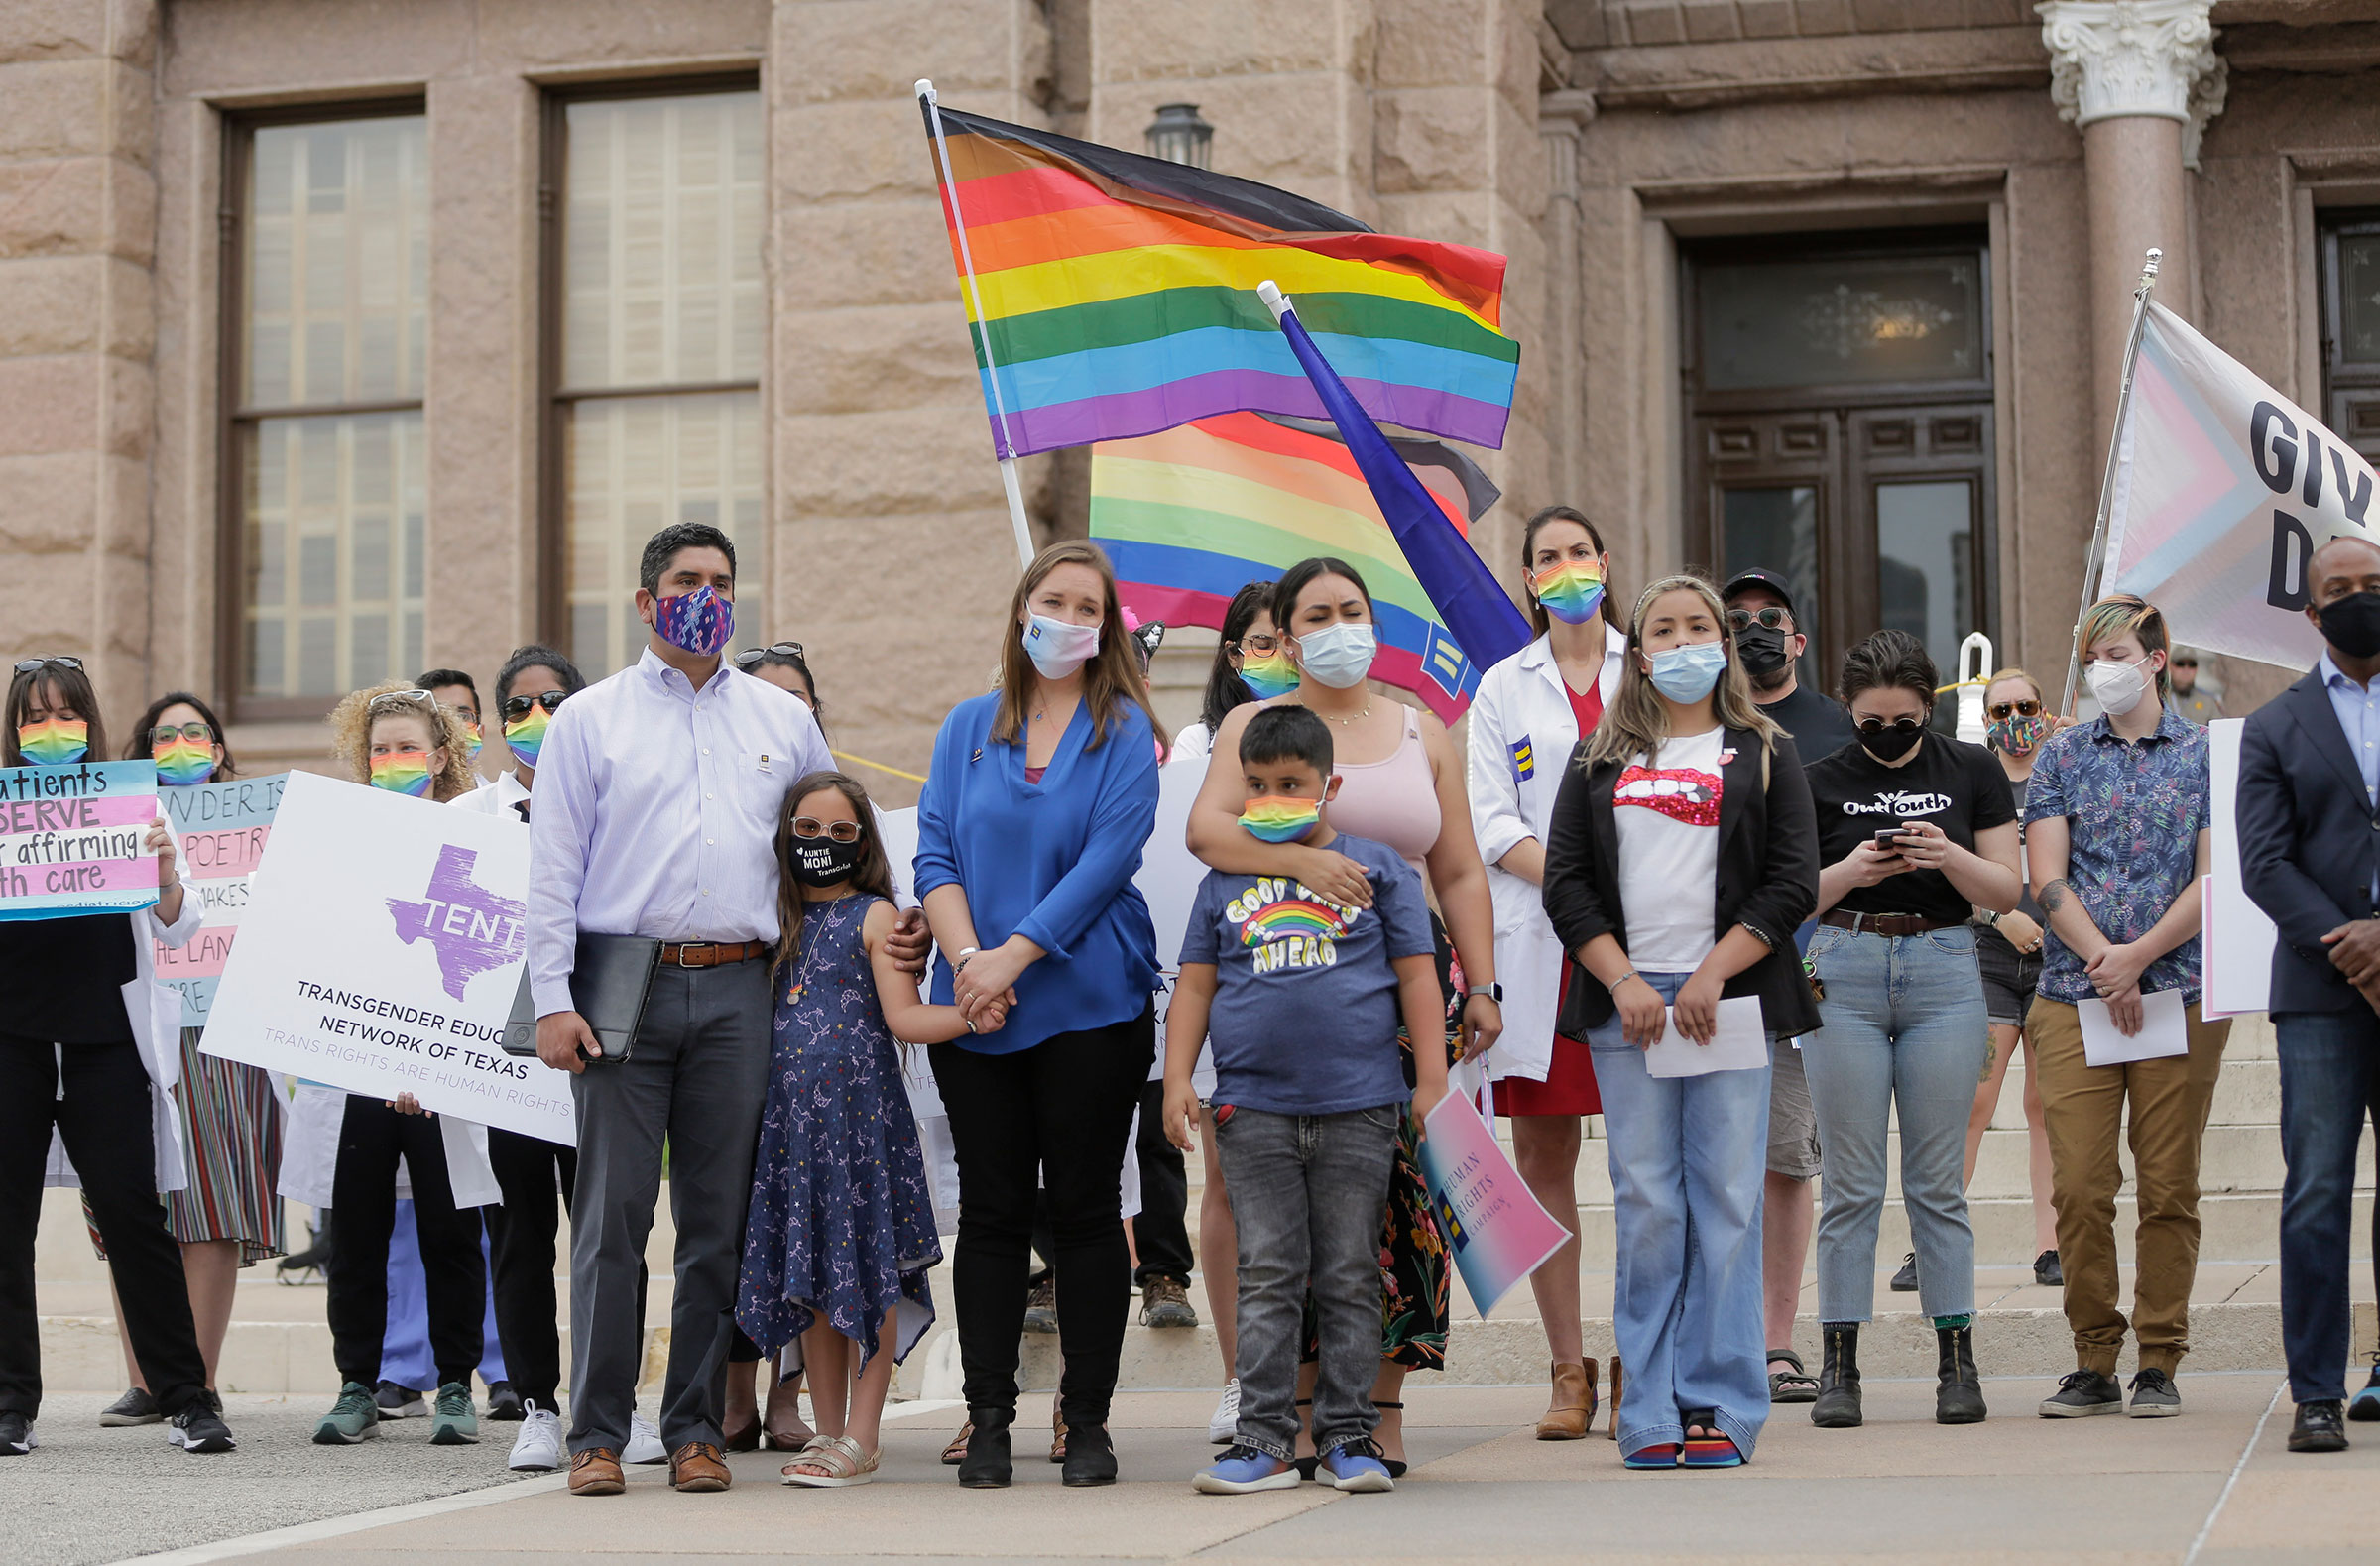 LGBTQ advocates including representatives from Equality Texas, the Transgender Education Network of Texas, Texas Freedom Network, ACLU of Texas, Lambda Legal, medical and health care professionals, and parents of transgender children rally at the Texas State Capitol on May 4, 2021 in Austin to stop proposed medical care ban legislation that would criminalize gender-affirming care.